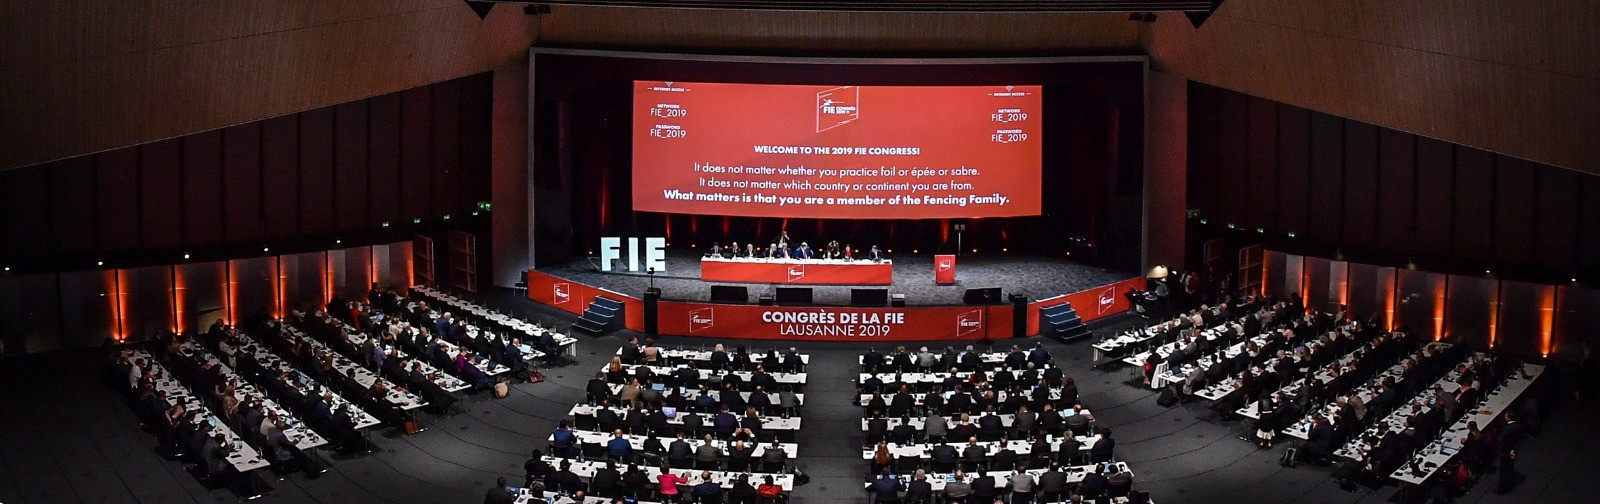 Under the Statues of the FIE, Elective Congresses are always held in Olympic years ©FIE